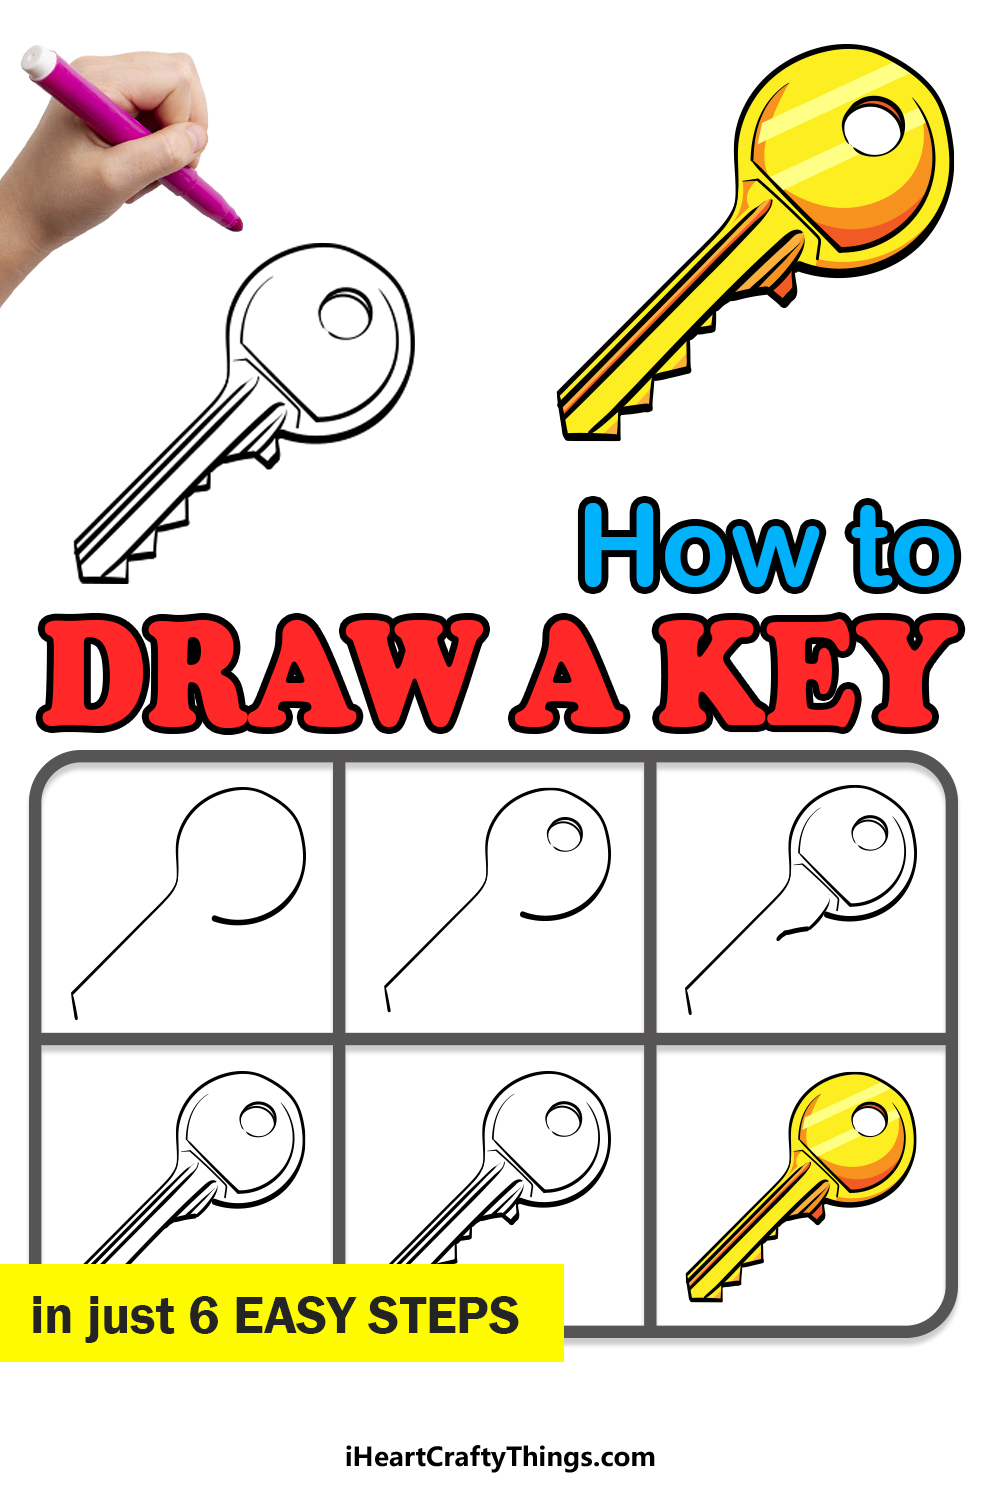 how to draw a key in 6 easy steps